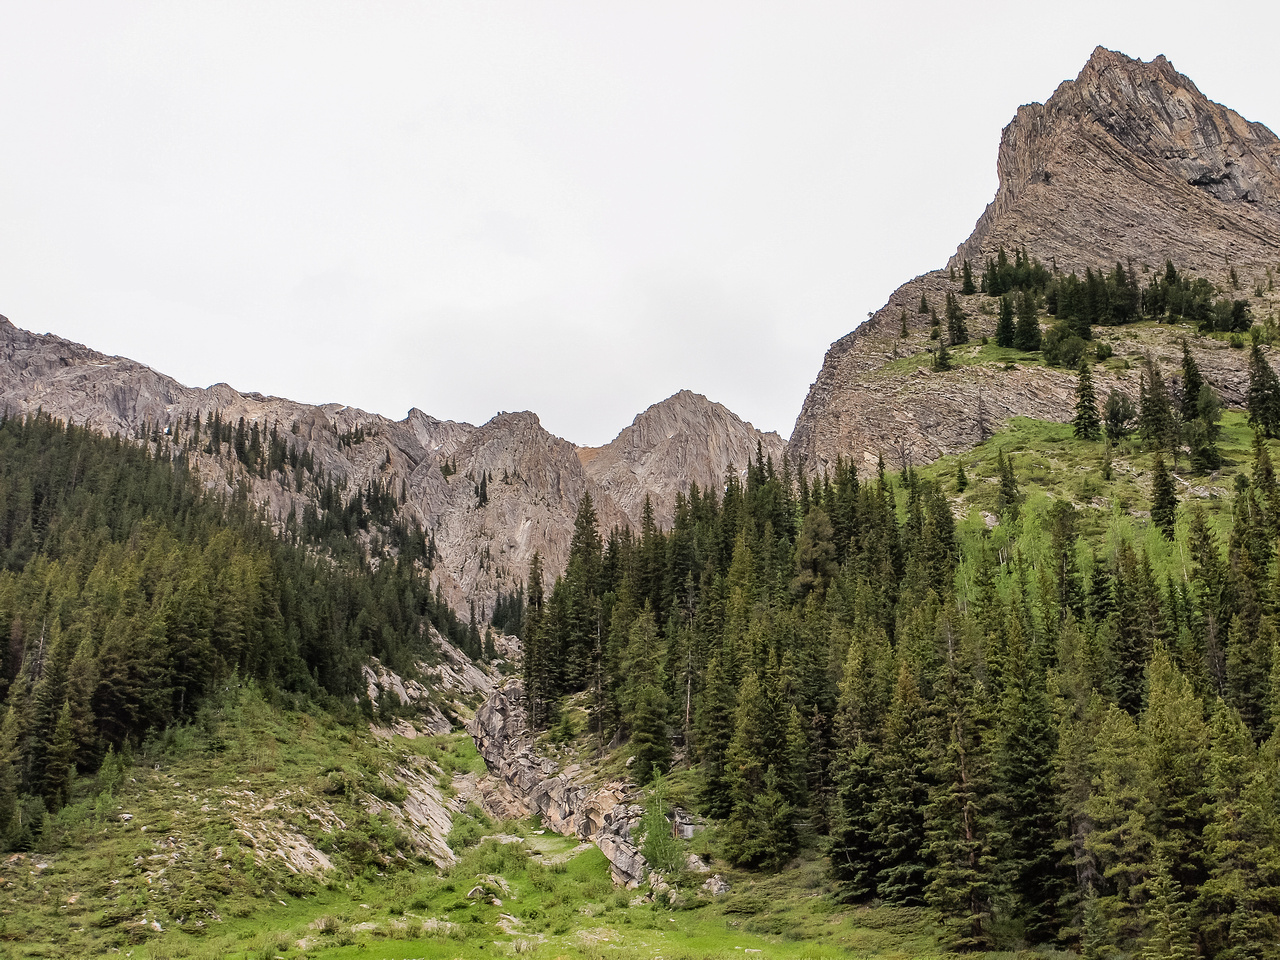 One more look back at our escape gully before we rejoined our ascent track and bikes.